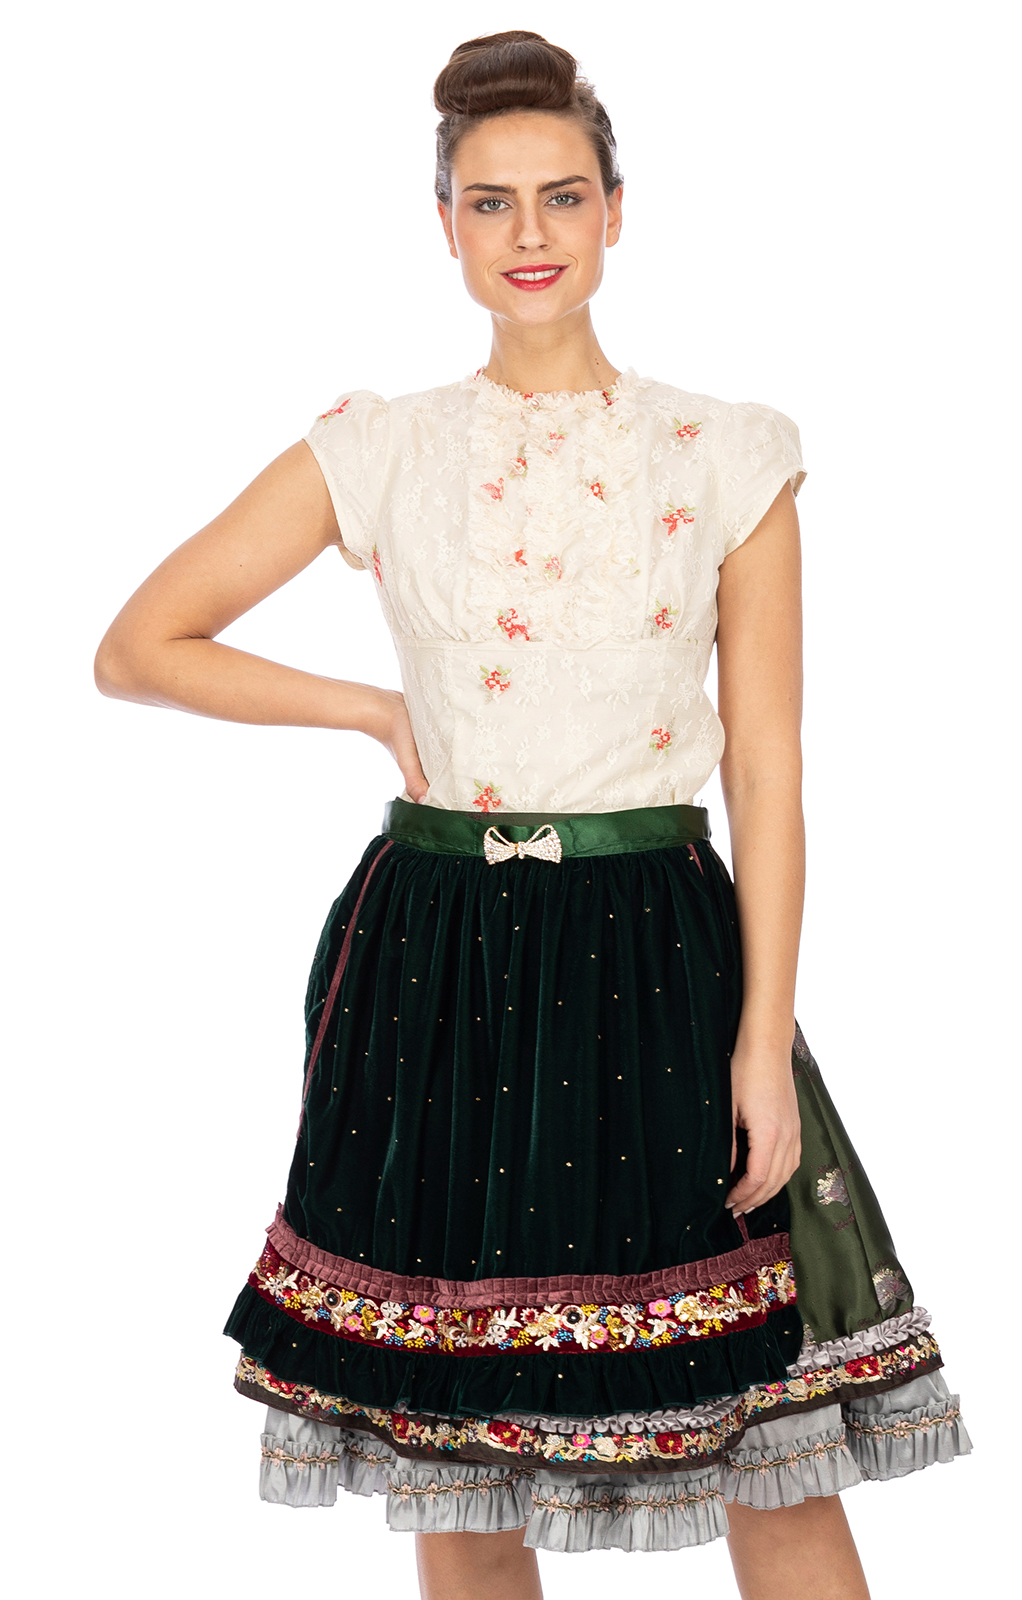 Traditional skirt with apron Lola Paltinger SHANNON green von Stockerpoint